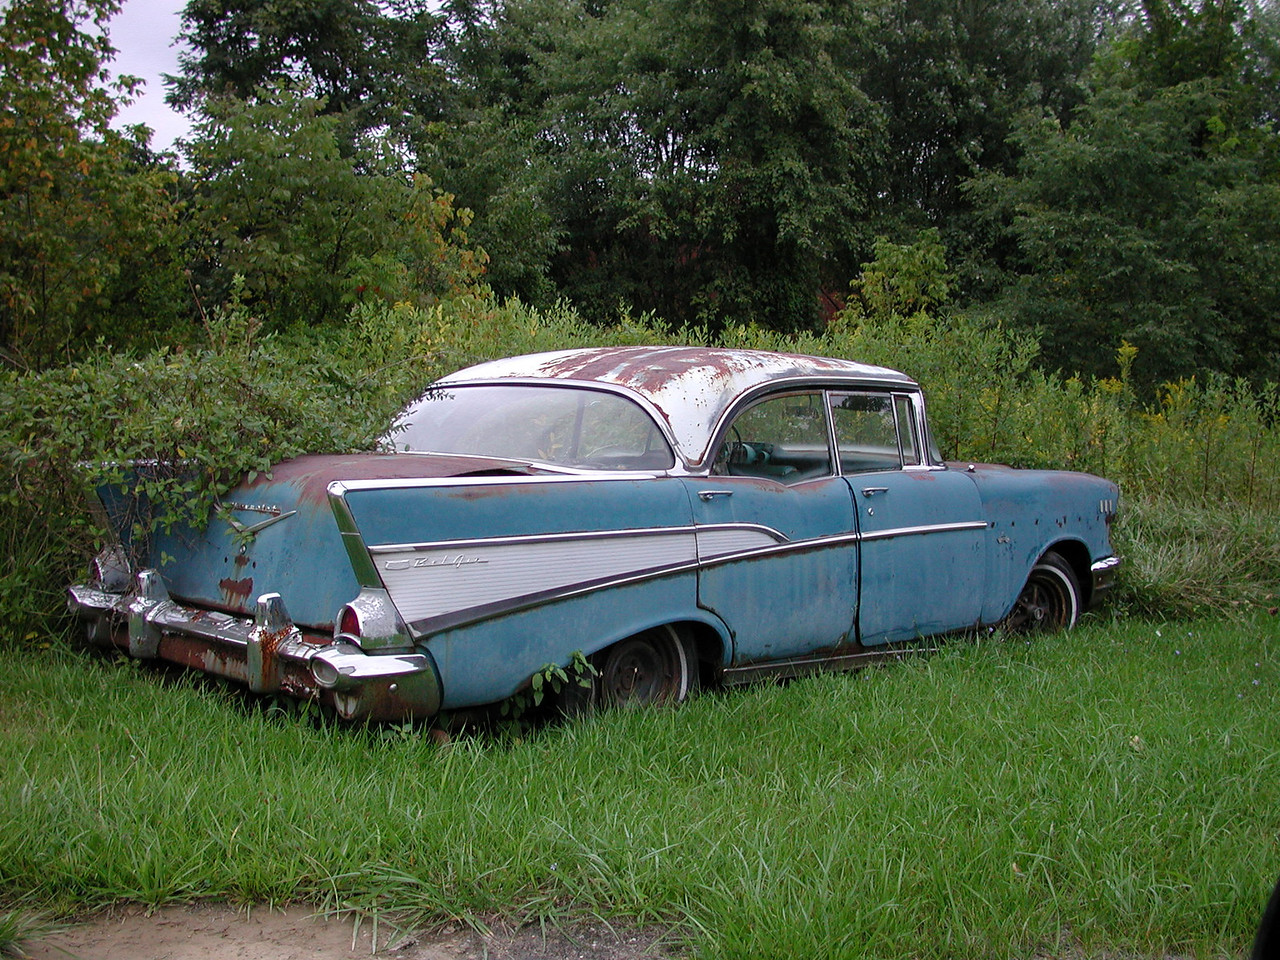 In Romney, I saw an old '57 Chevy just rustin' away.